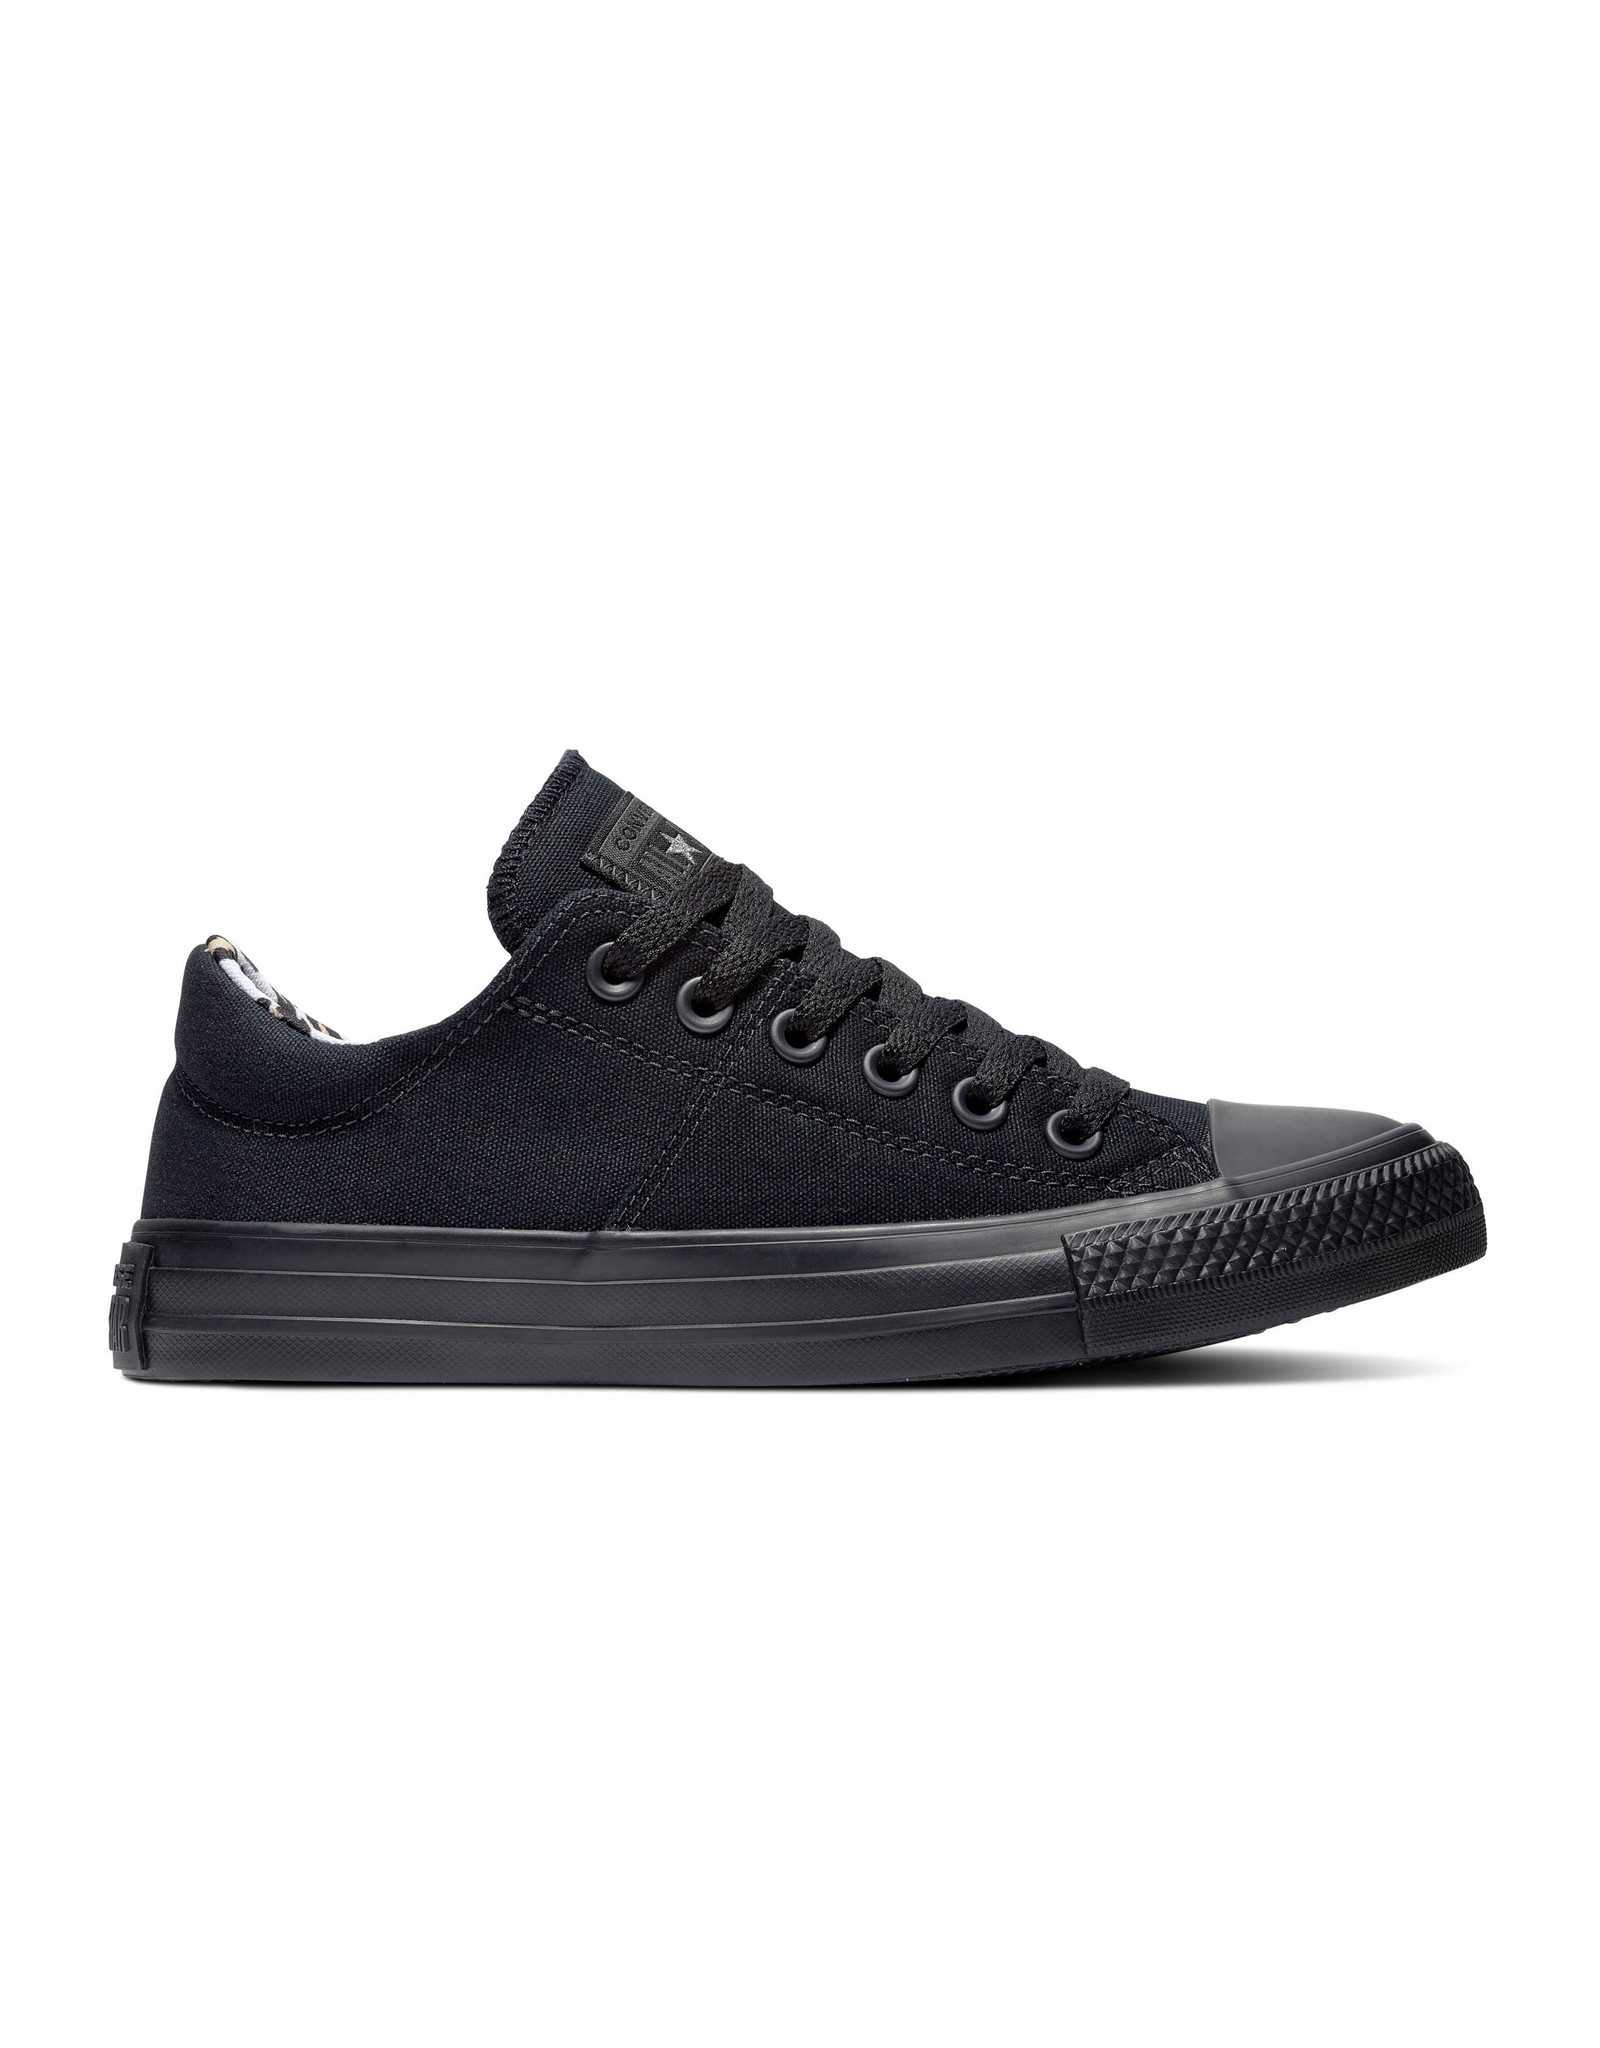 CONVERSE CHUCK TAYLOR ALL STAR  MADISON OX BLACK/BLACK/MULTI C14MMO-567149C